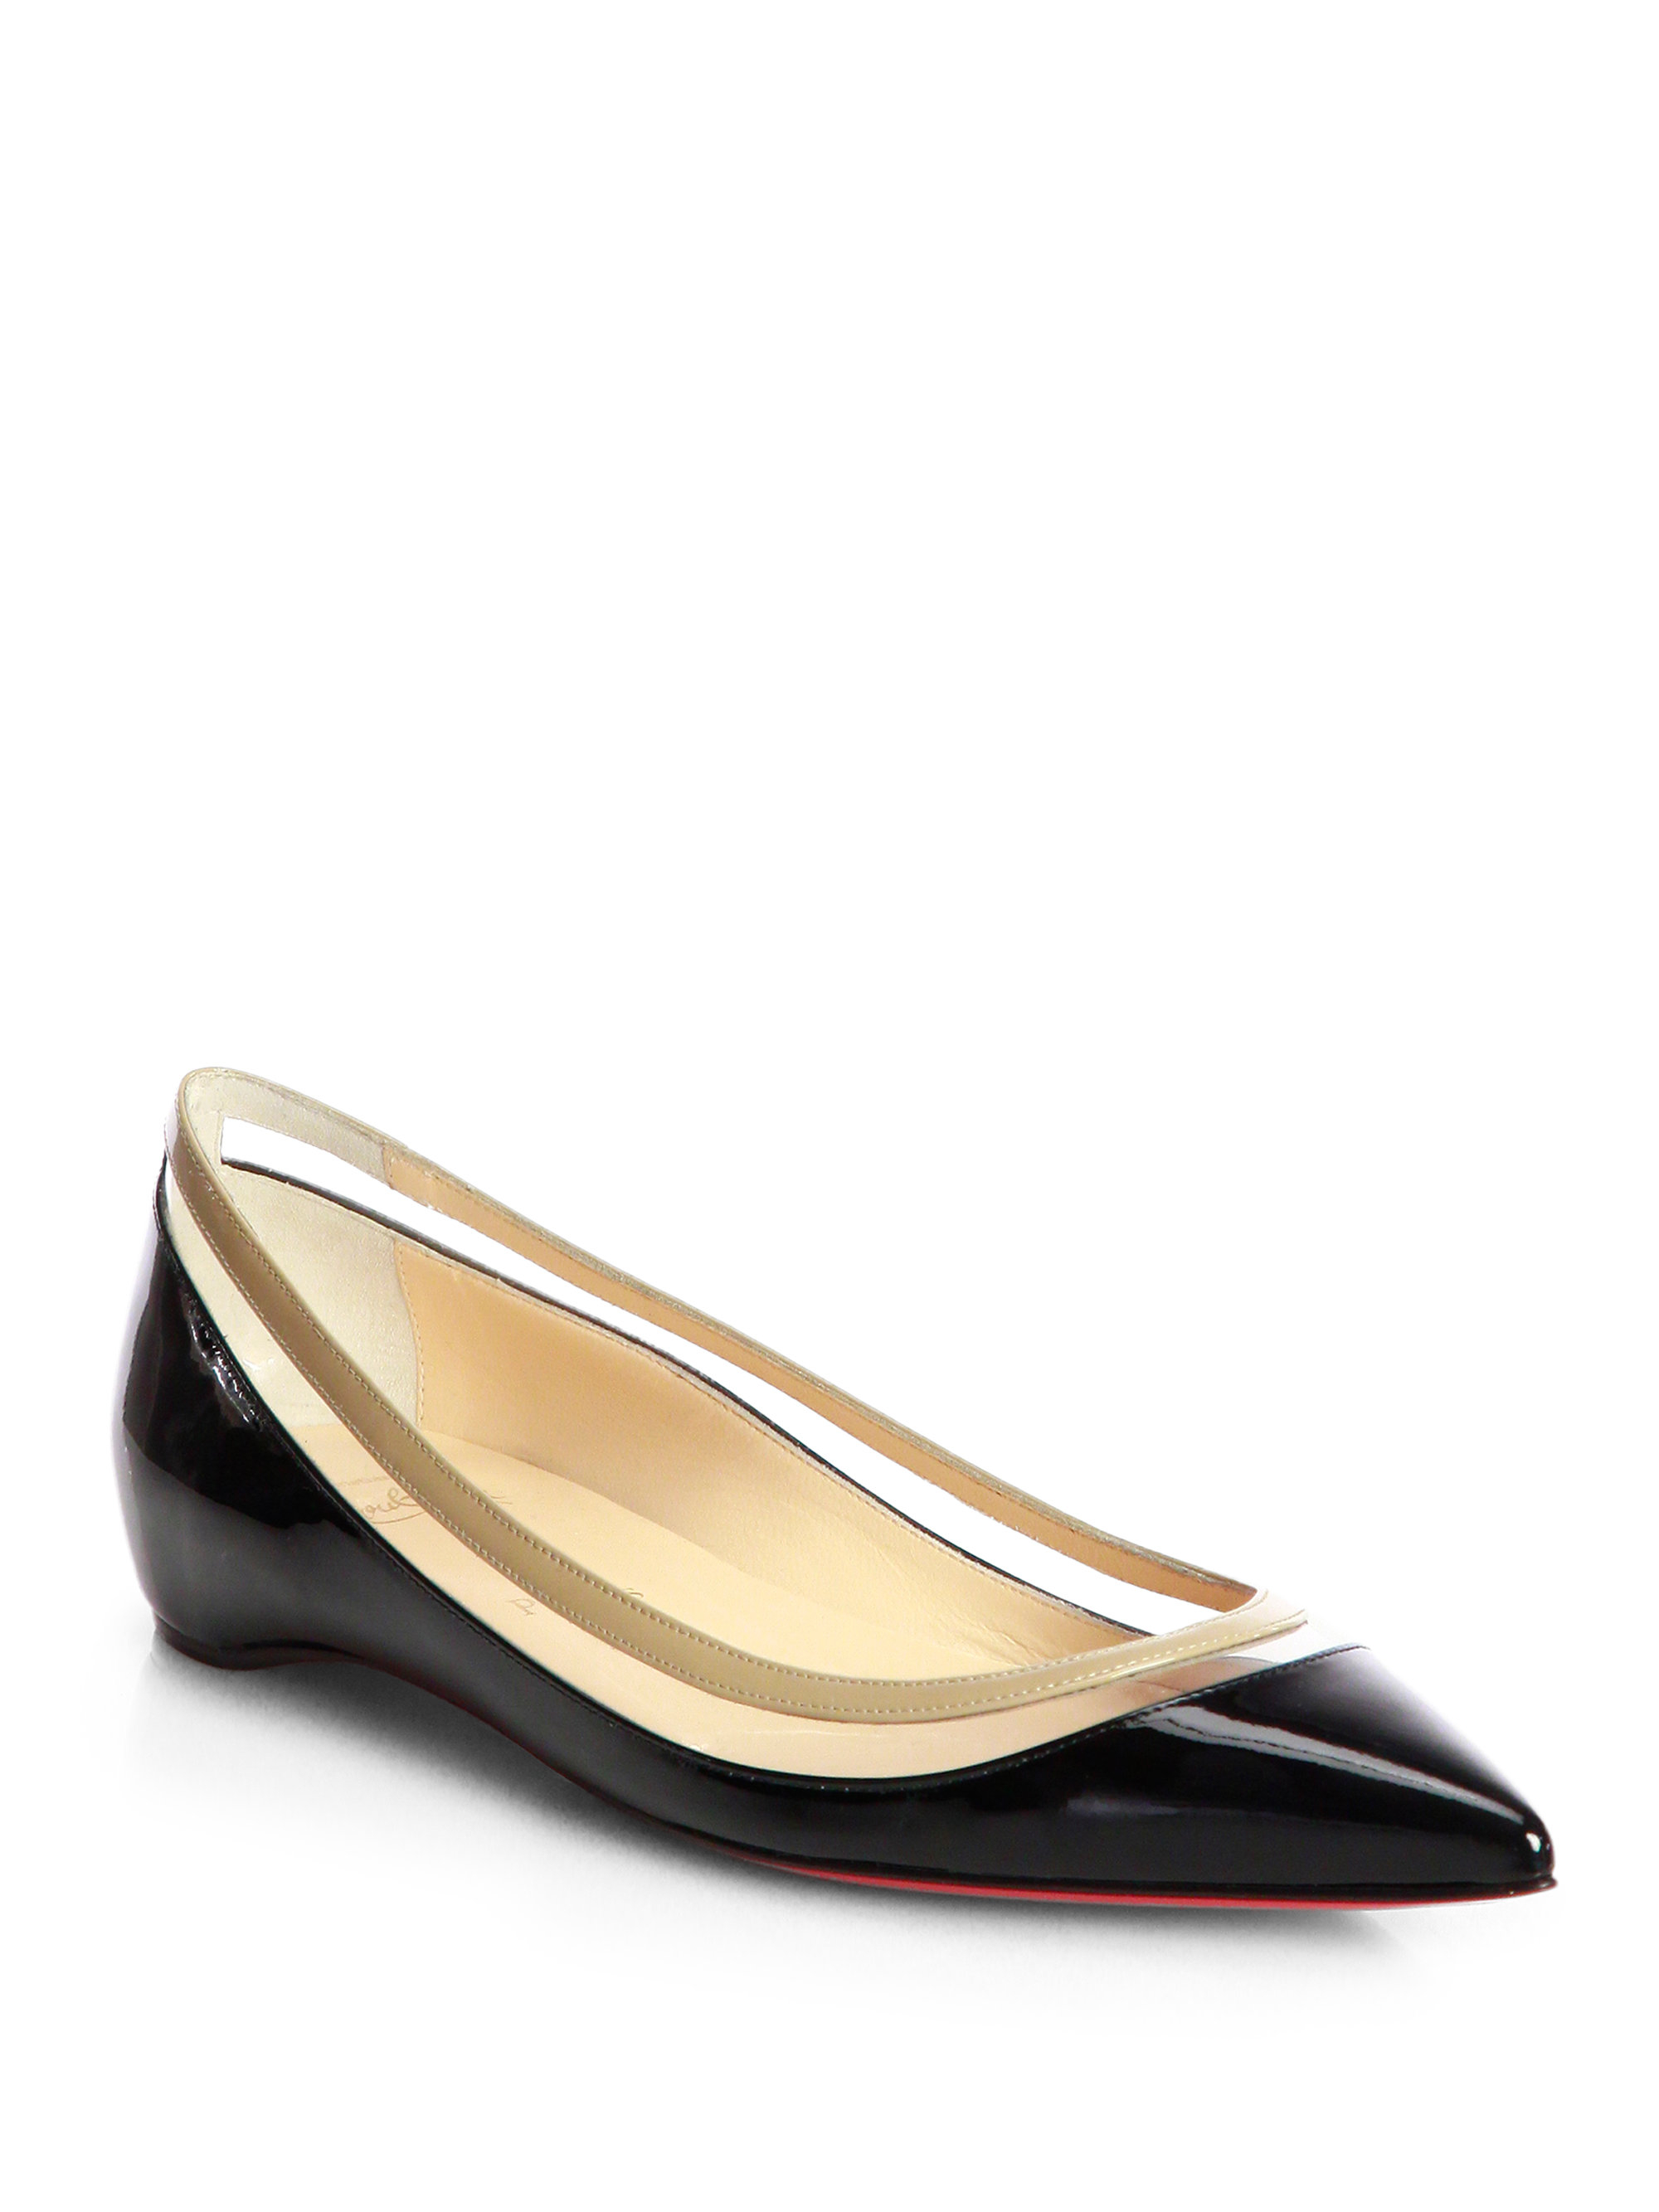 christian louboutin pointed-toe flats Black patent leather covered ...